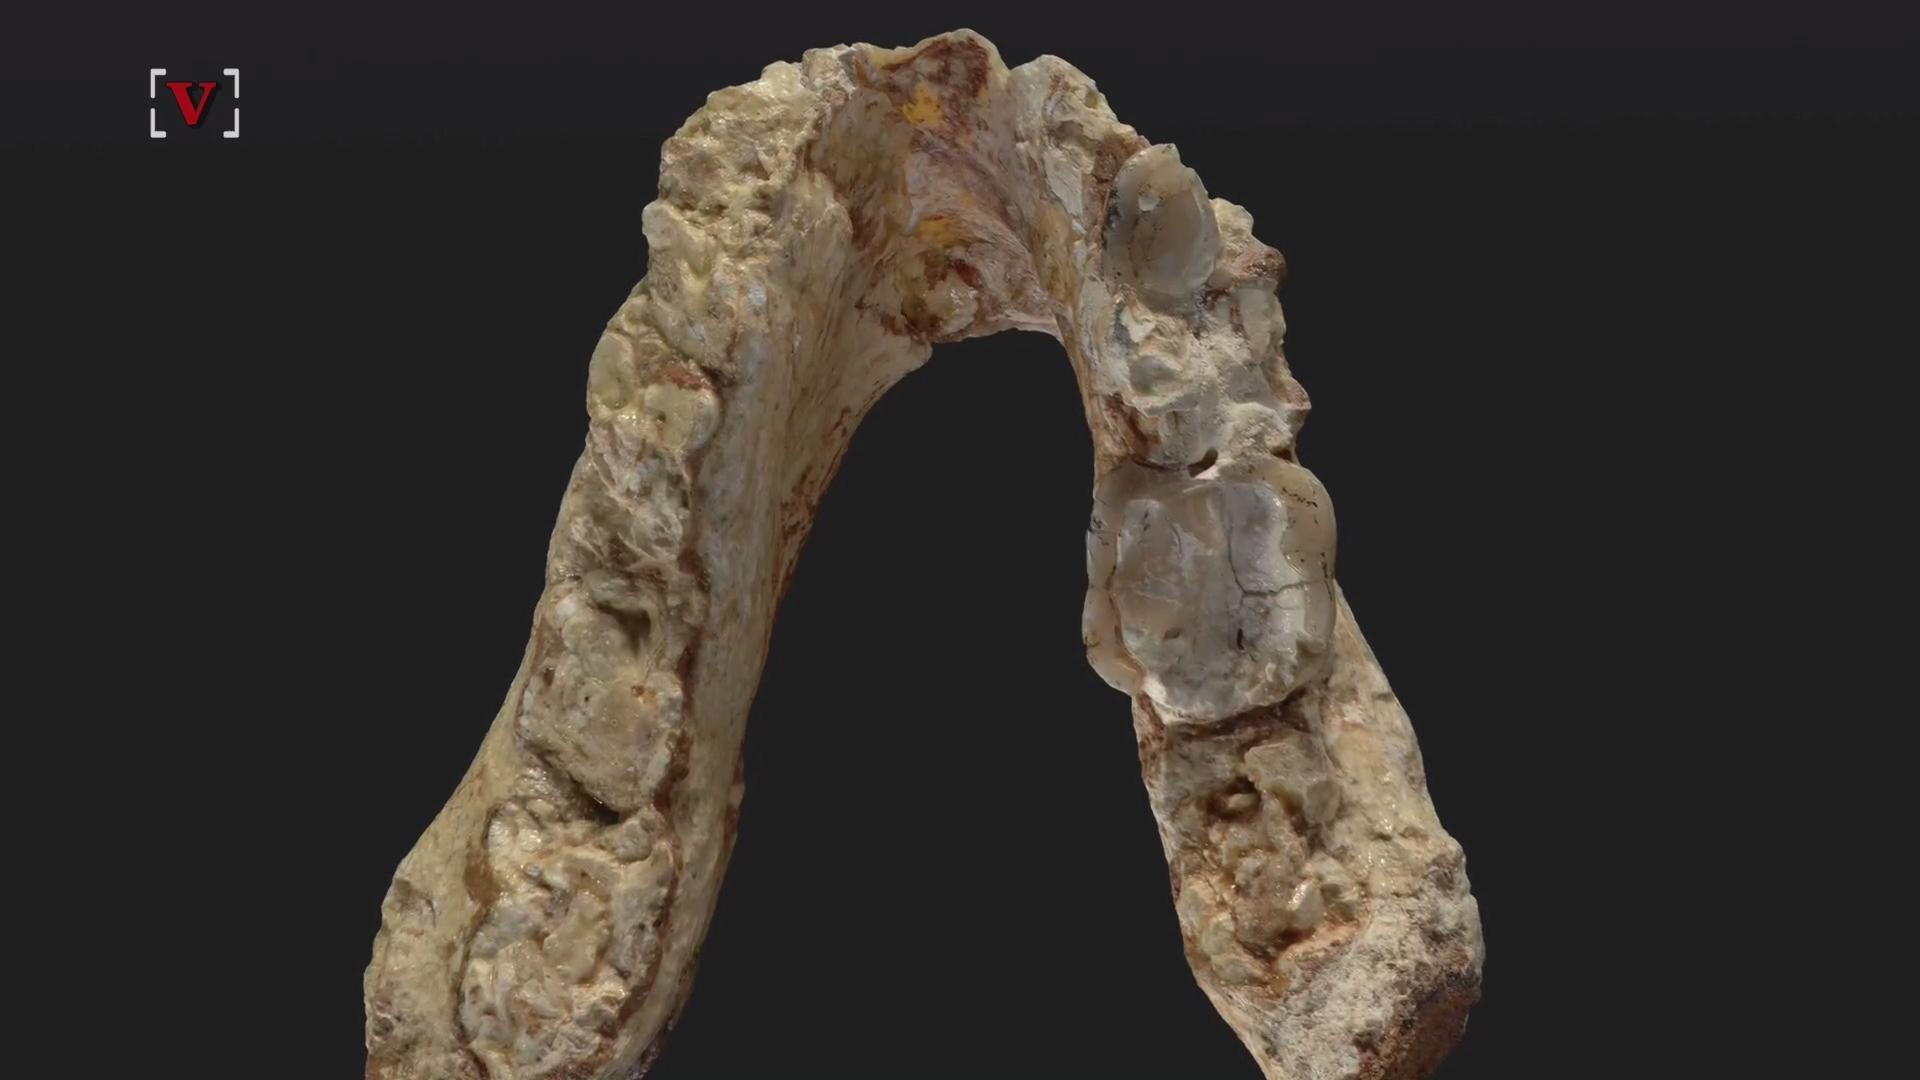 7.2 Million-Year-Old Fossils Challenge The Origin Of Human Lineage